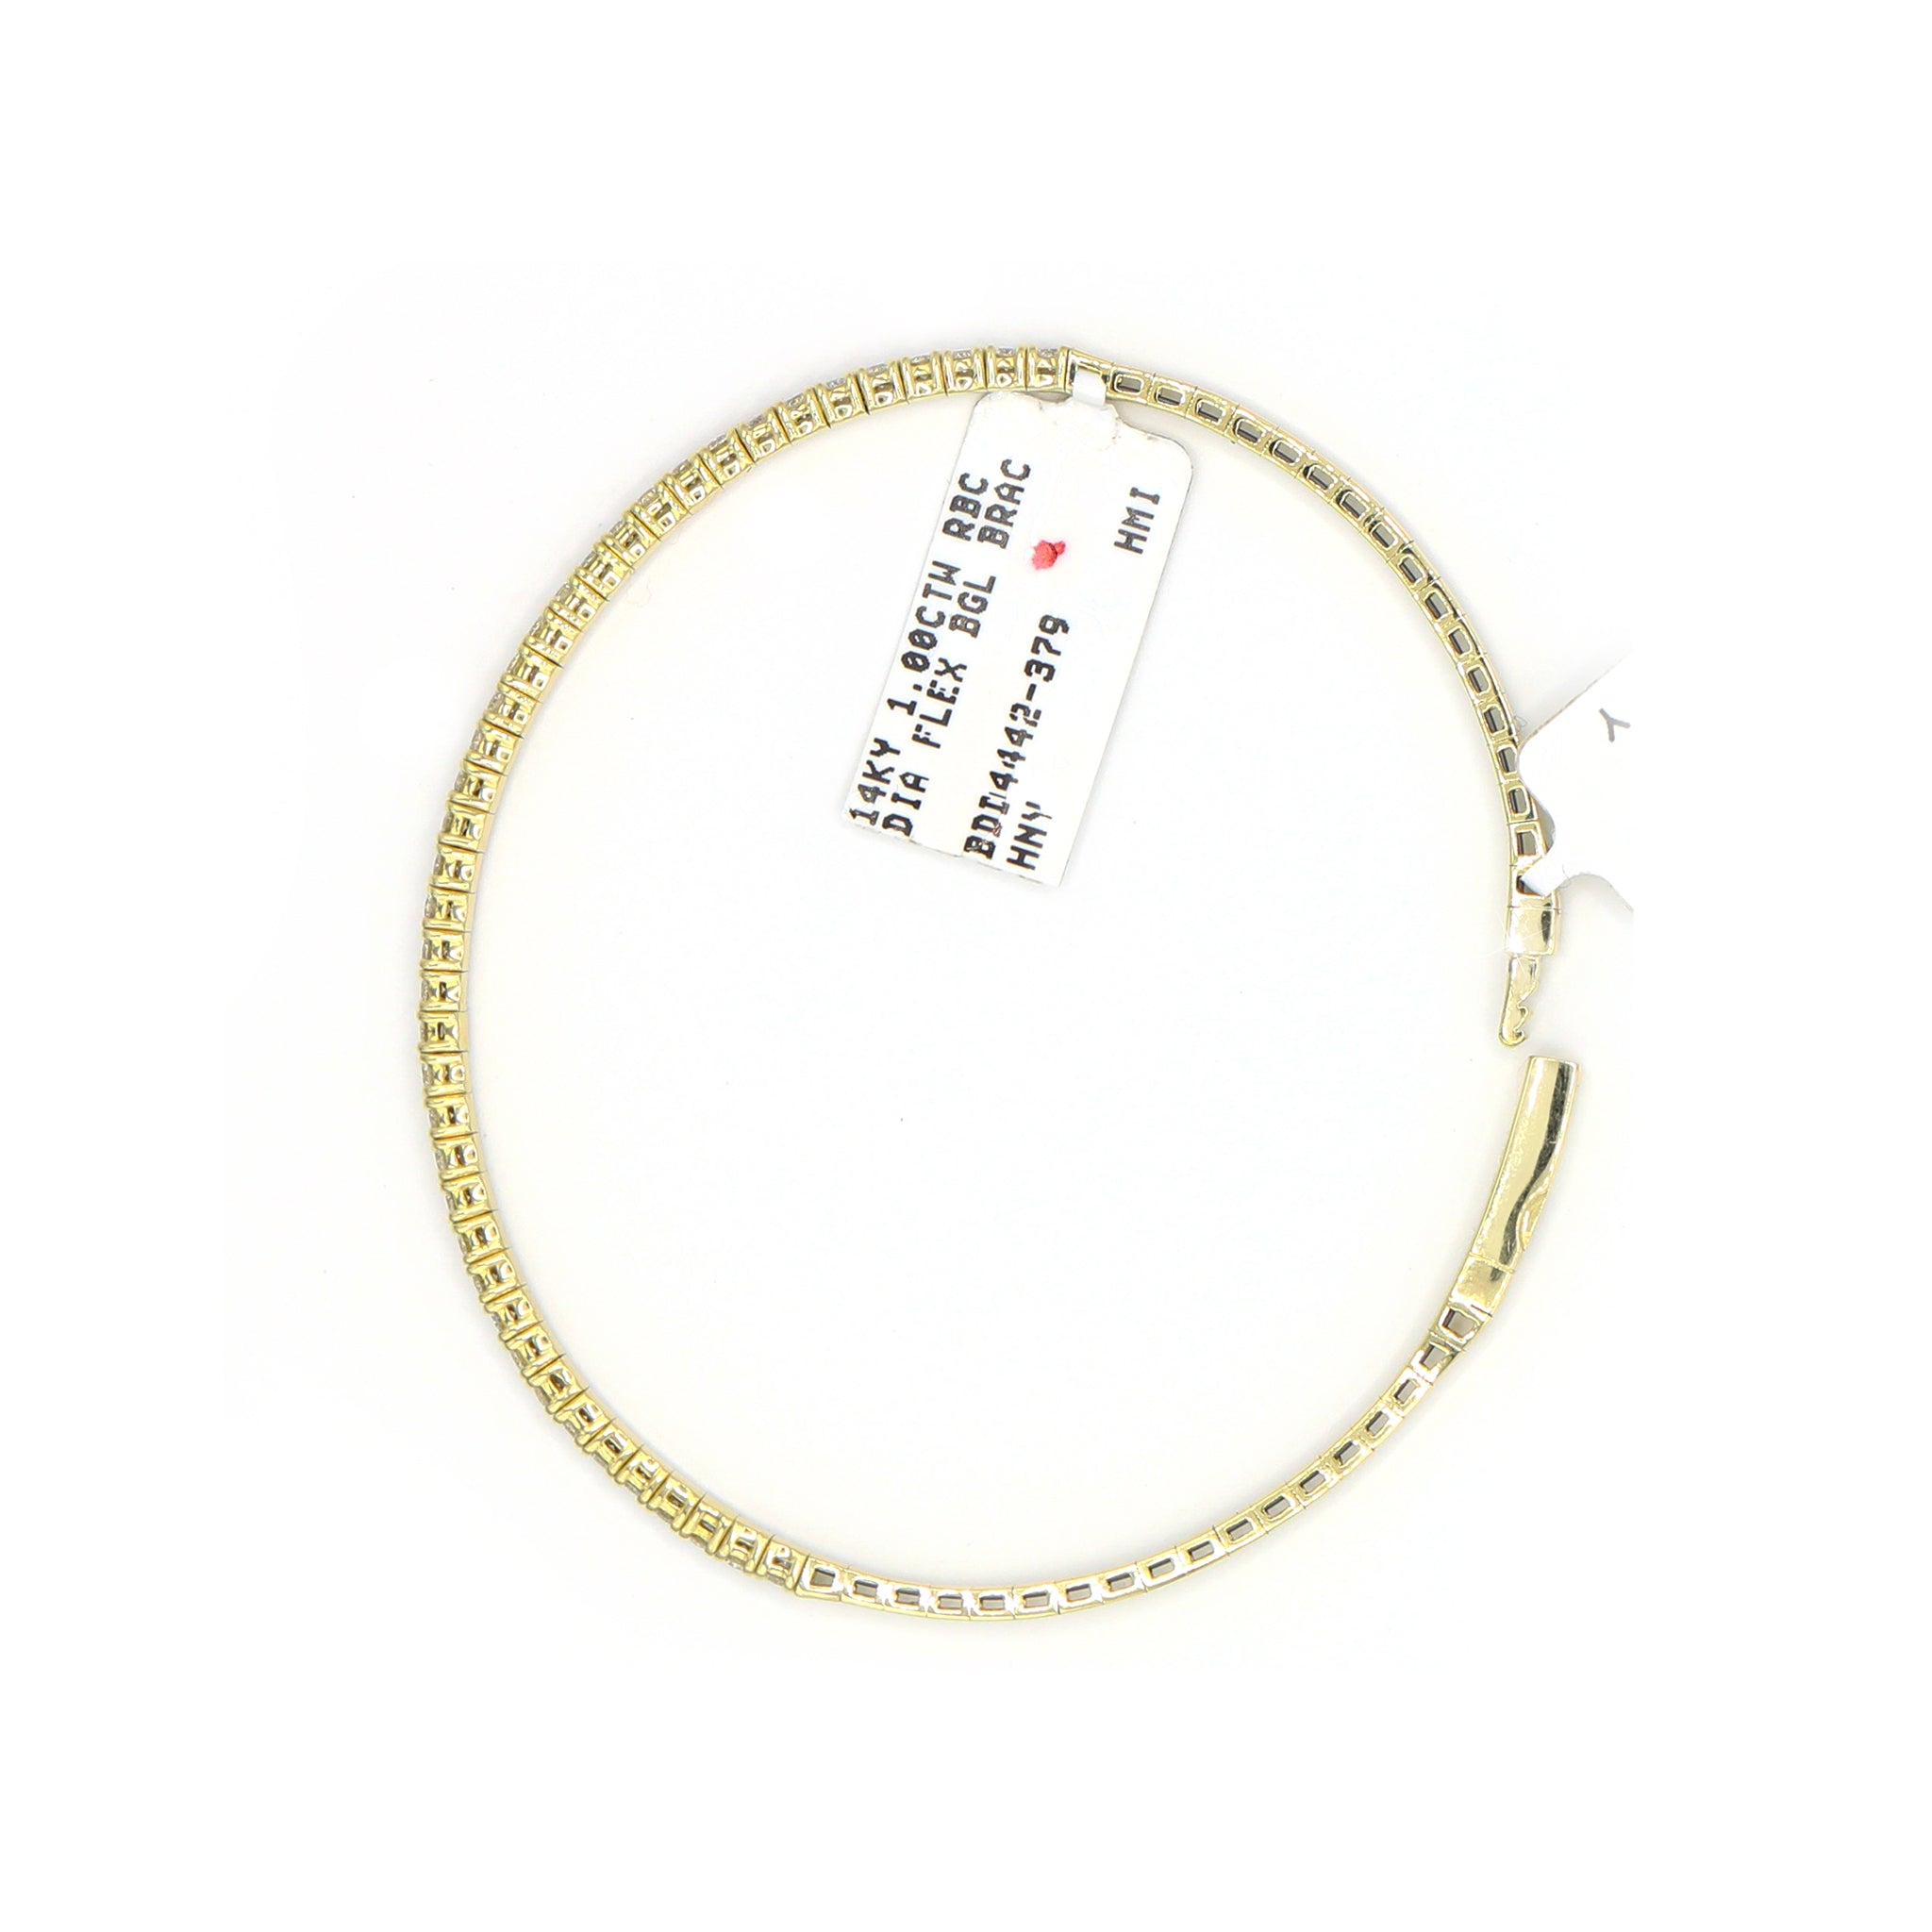 Refined 14K Yellow Gold Flexible Bangle Diamond Bracelet (1.00ct Carat Diamond Weight)